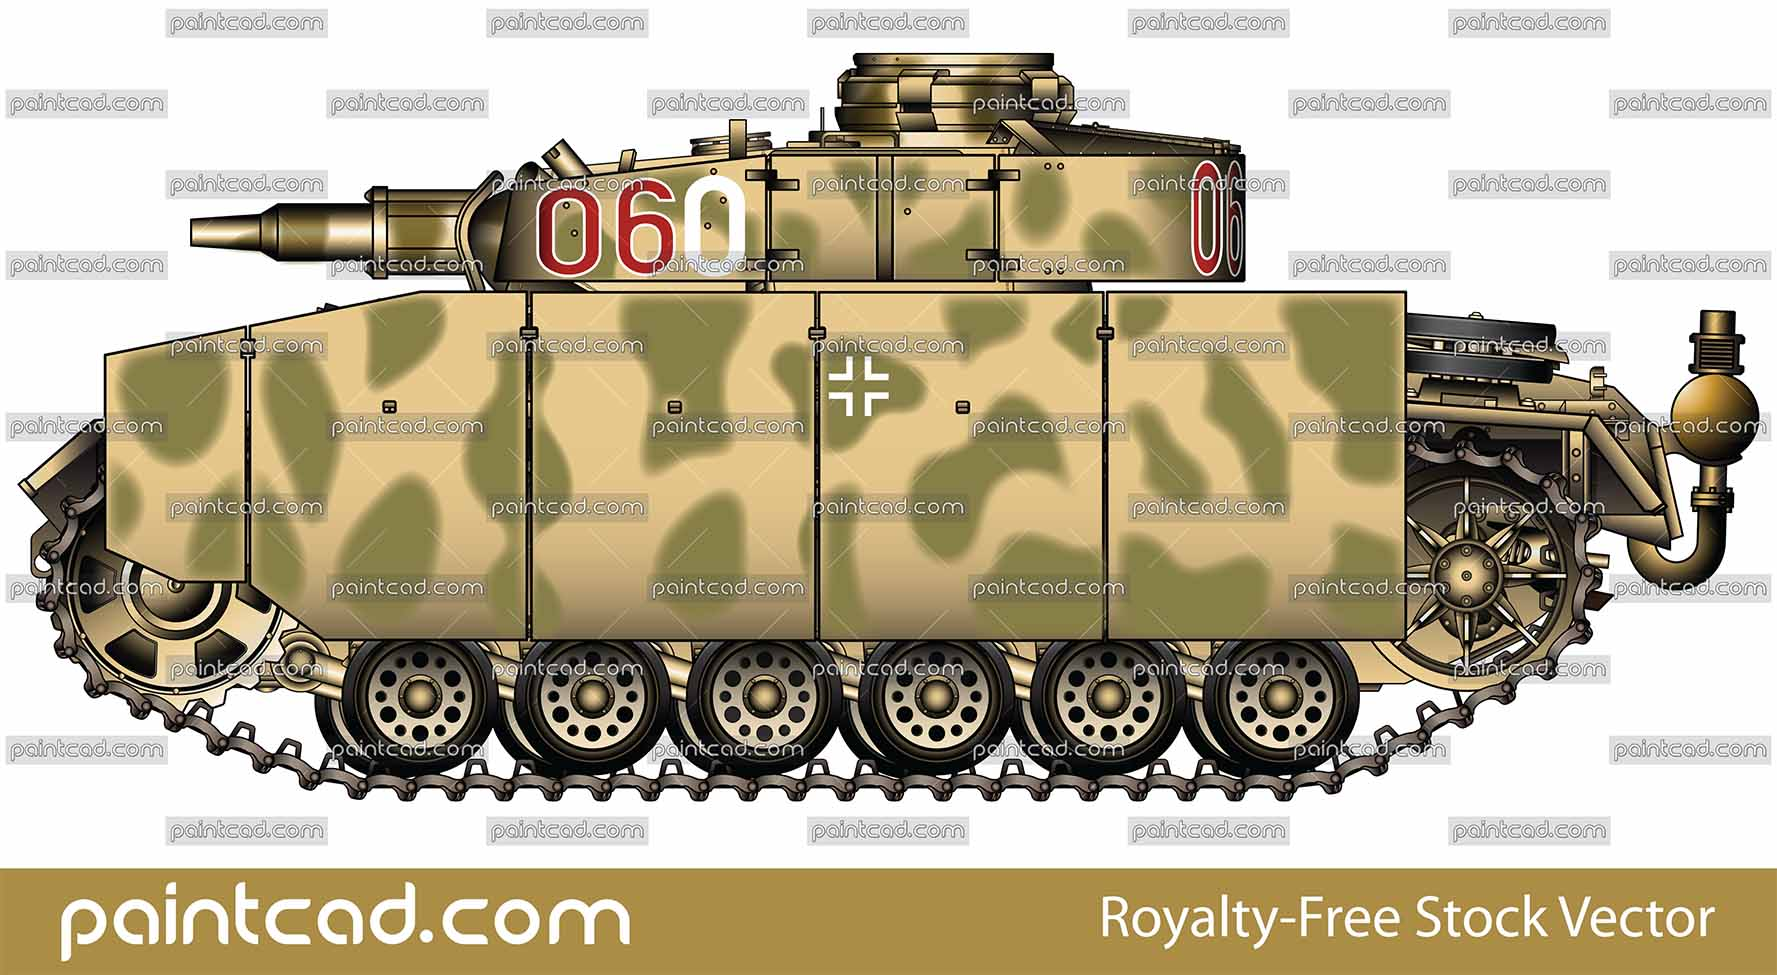 Vector illustration of Panzerkampfwagen III Ausführung M with short gun 75-mm howitzer from armoured 1st SS Panzer Panzergrenadier Division, July 1943. The machine was involved in hostilities during the World War II in summer 1943 on Eastern front in the Battle of Kursk. The tank is painted in yellow-green camouflage. Armor skirts (Schürzen in German language) are designed to provide protection primarily against Russian anti-tank rifles and low velocity high explosive rounds. They are made from steel plates. Excellent AutoCAD drawing colored with Adobe Illustrator CS6. Under the side panels in separate layers are all other elements of the tank. Isolated object over white background.